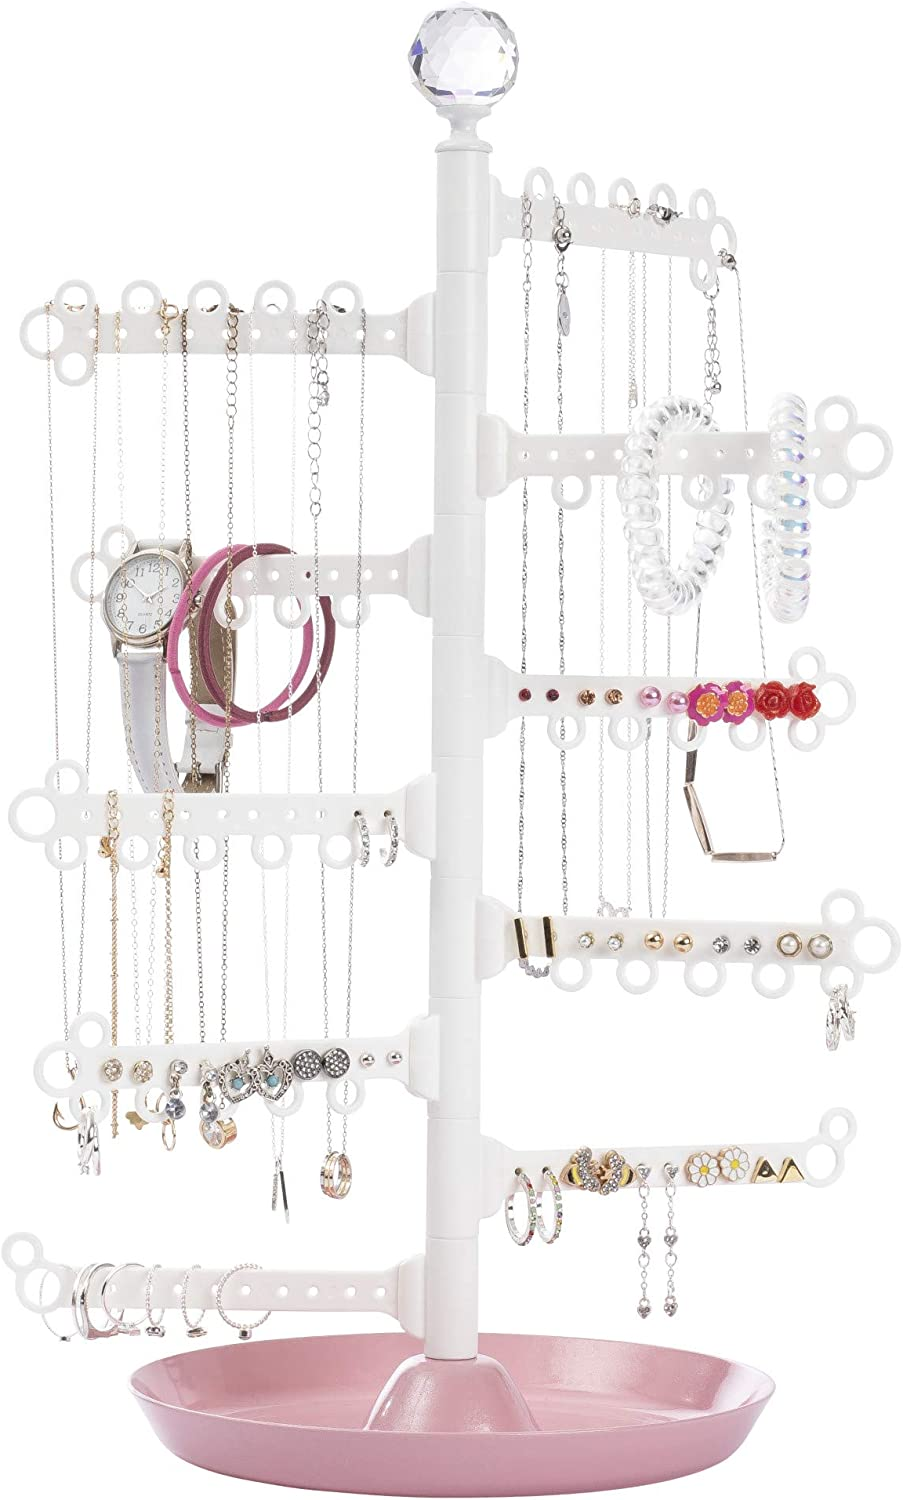 """All Hung Up 10-Tier 15"""" Rotating 360° Display Earrings (100 holes-stud/dangly), Necklaces, Bracelets, Rings - Stand Tower Storage Jewelry Organizer Holder / Dish Base - Petite 15"""" Height - Pink Tray"""